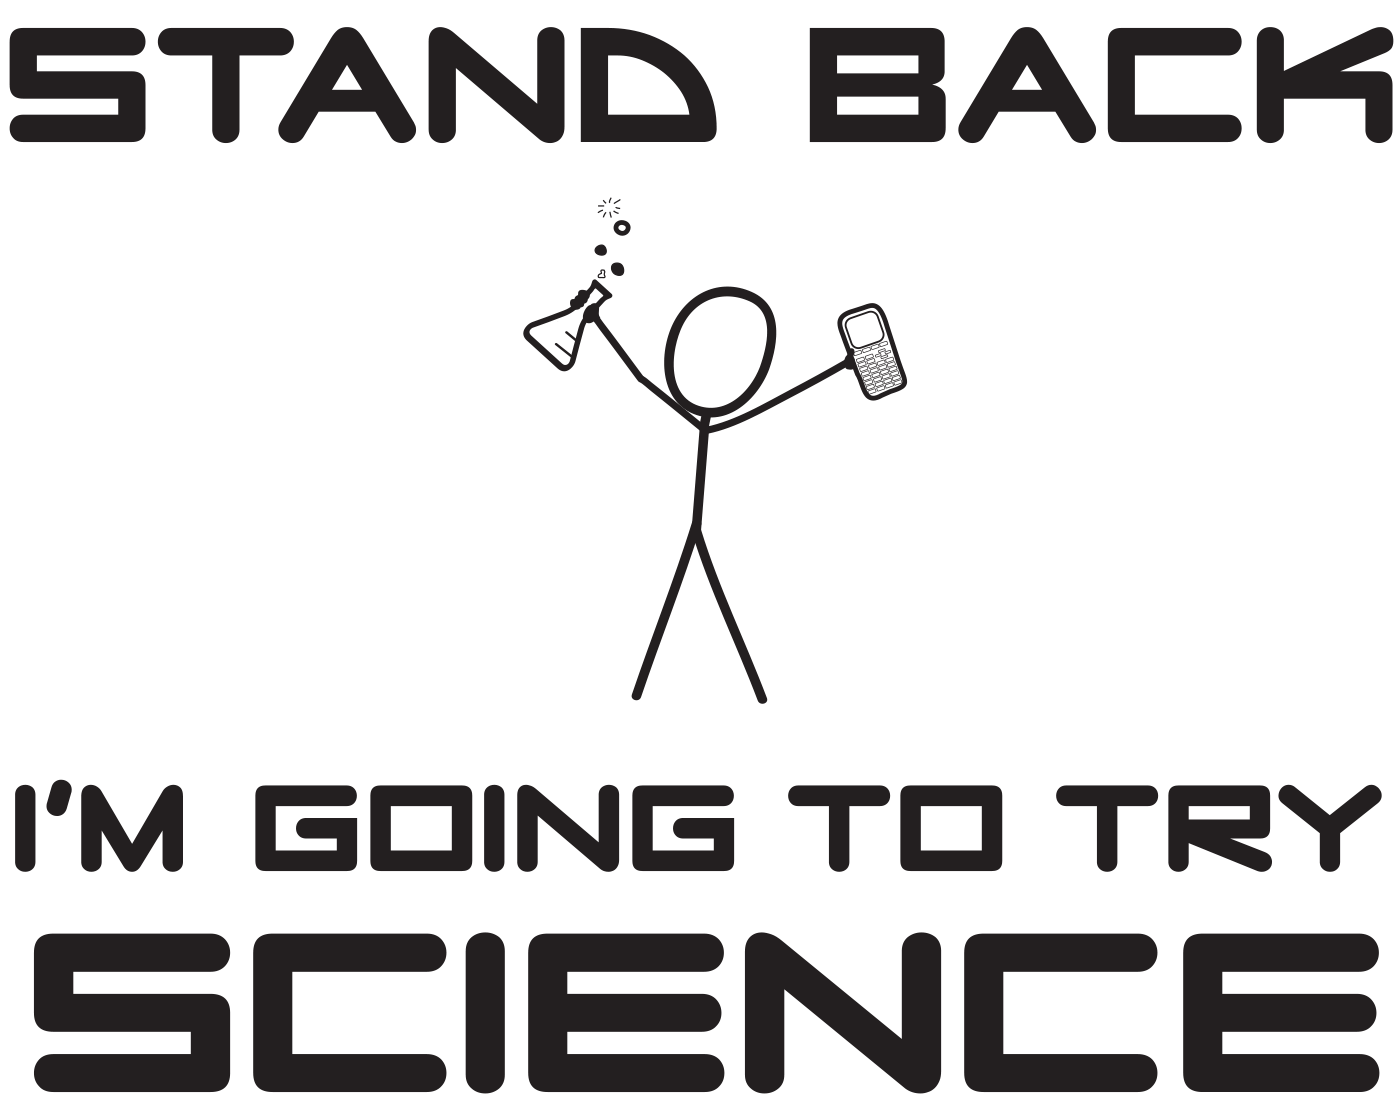 i'm going to try science